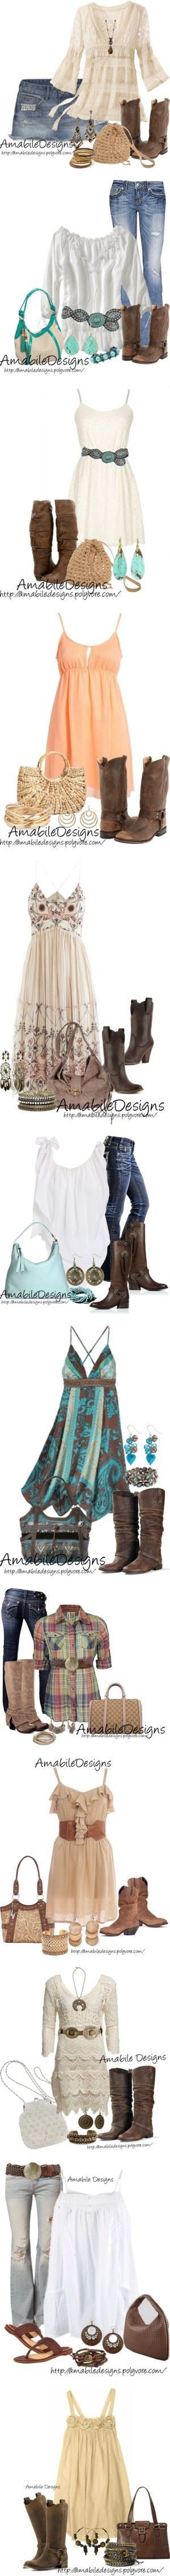 """Country Chic Look"" by amabiledesigns on Polyvore. Seriously...who am I? I'm not girly at all, but I like this."